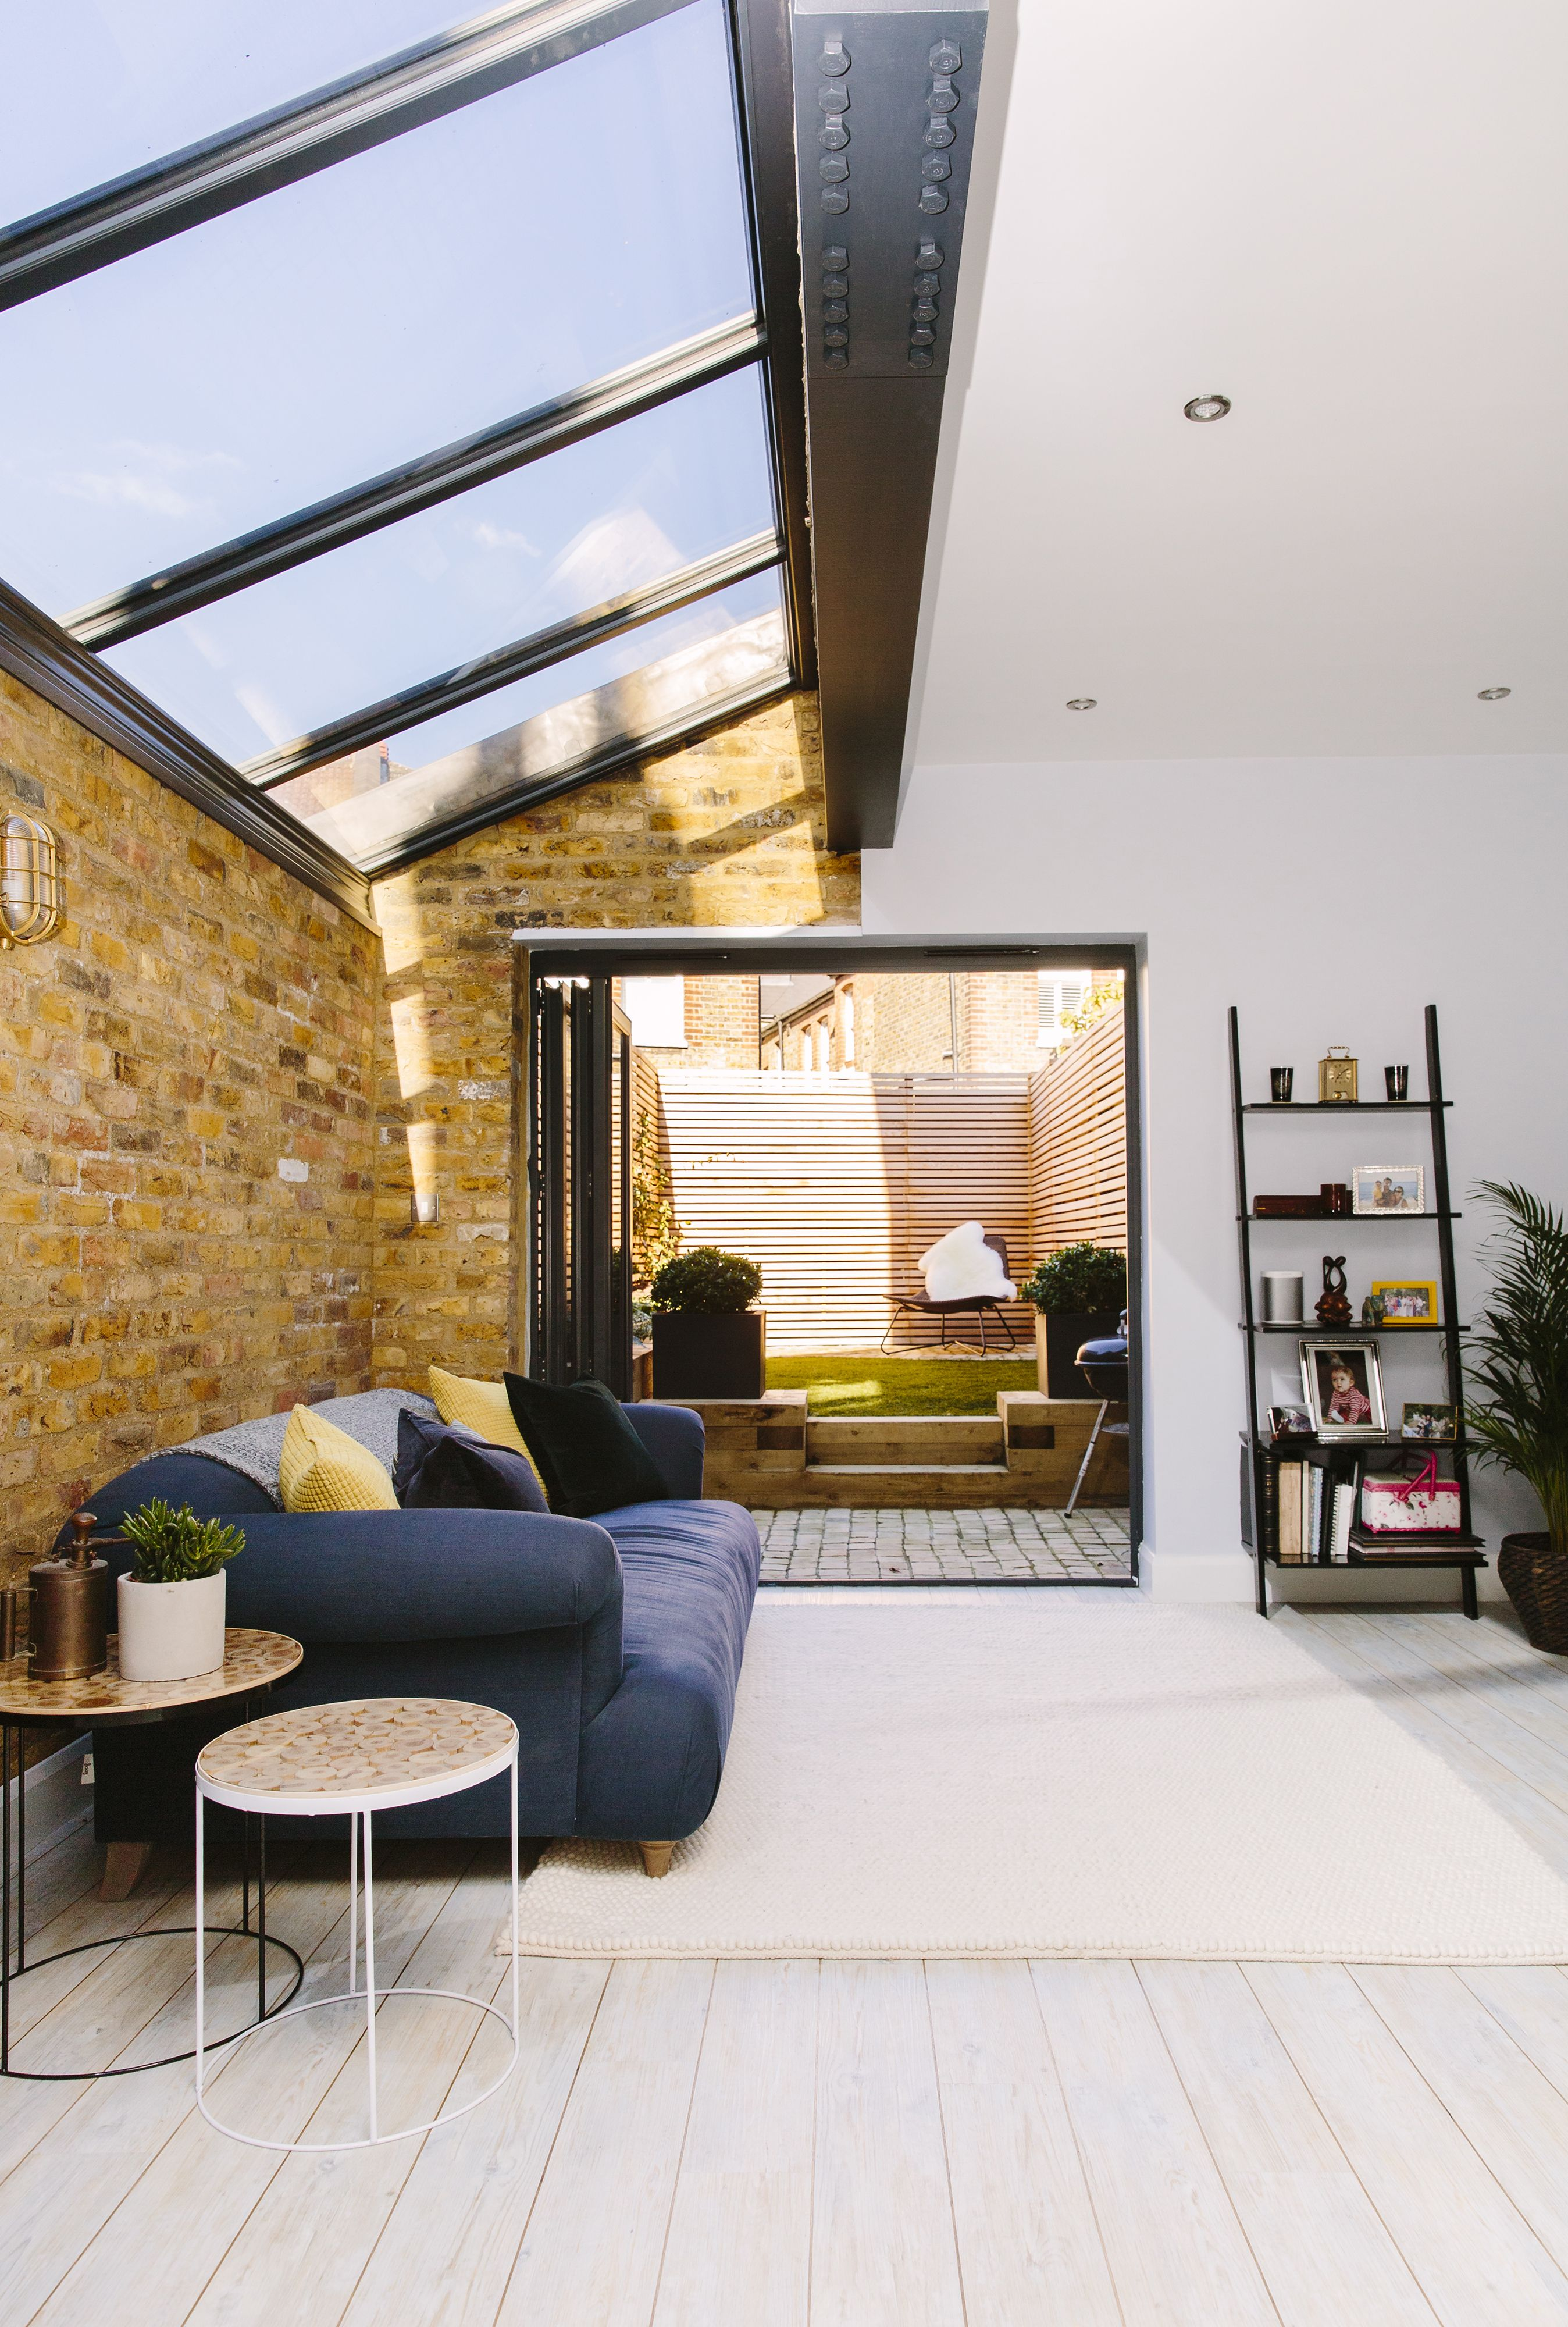 Rear extension allows you to move effortlessly from home into garden.